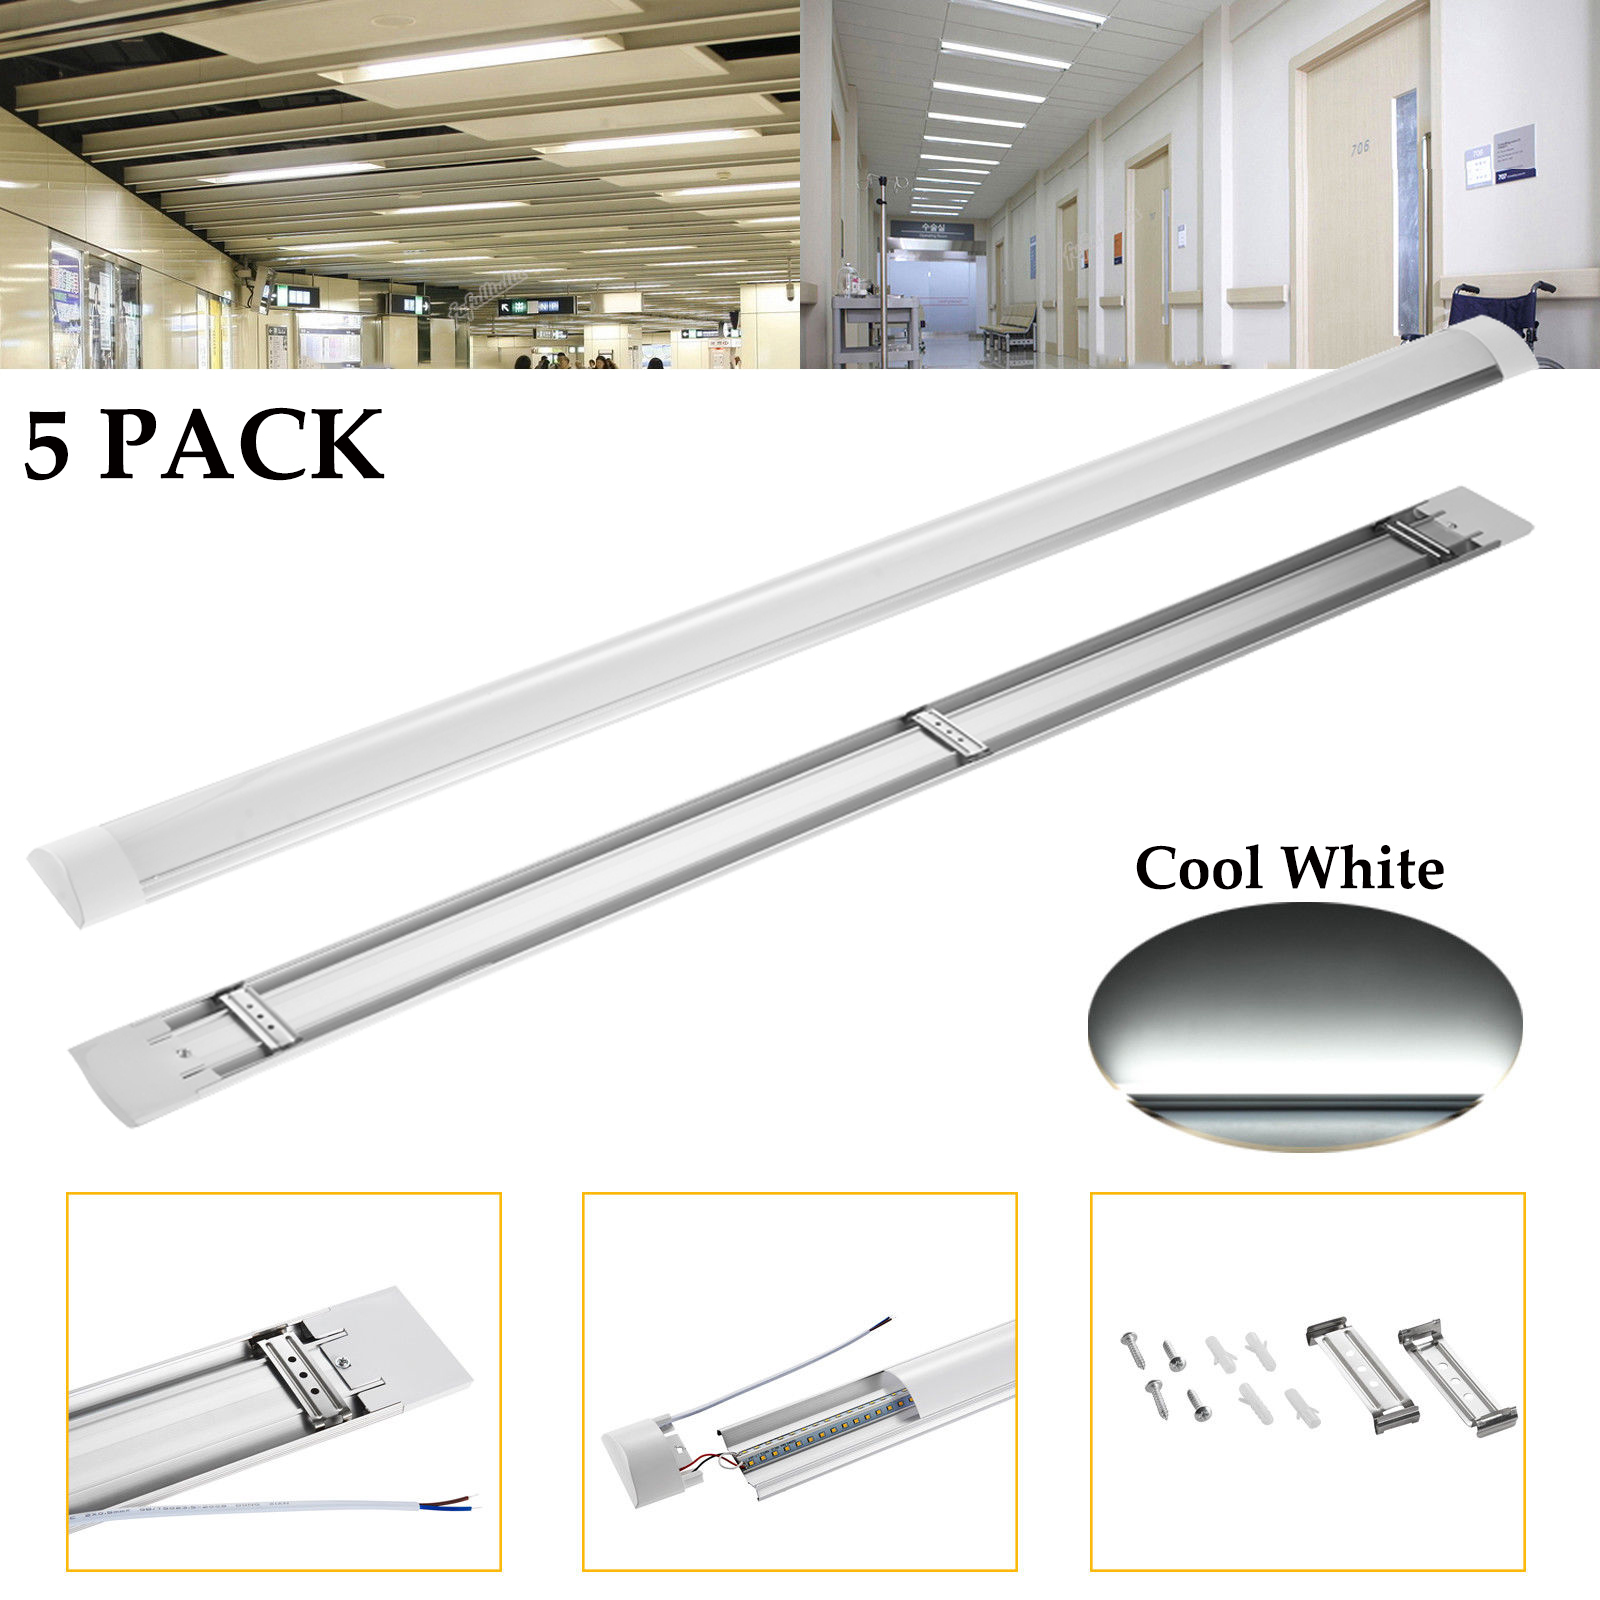 Details About 5x 4ft 40w Led Linear Batten Tube Light Surface Mounted Lamp Fixtures Cool White